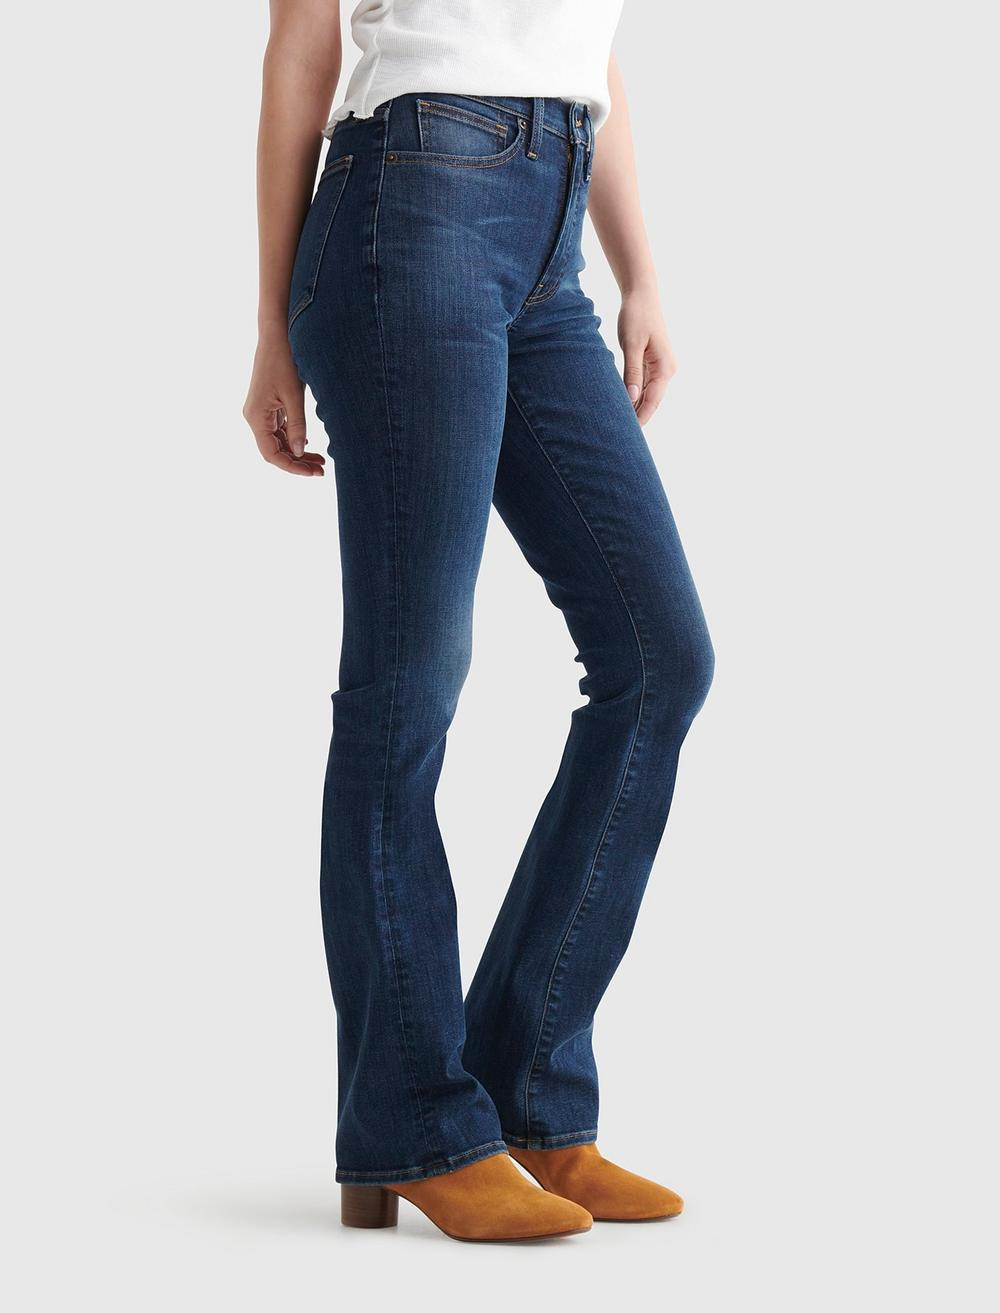 HIGH RISE BIANCA BOOT JEAN, image 3